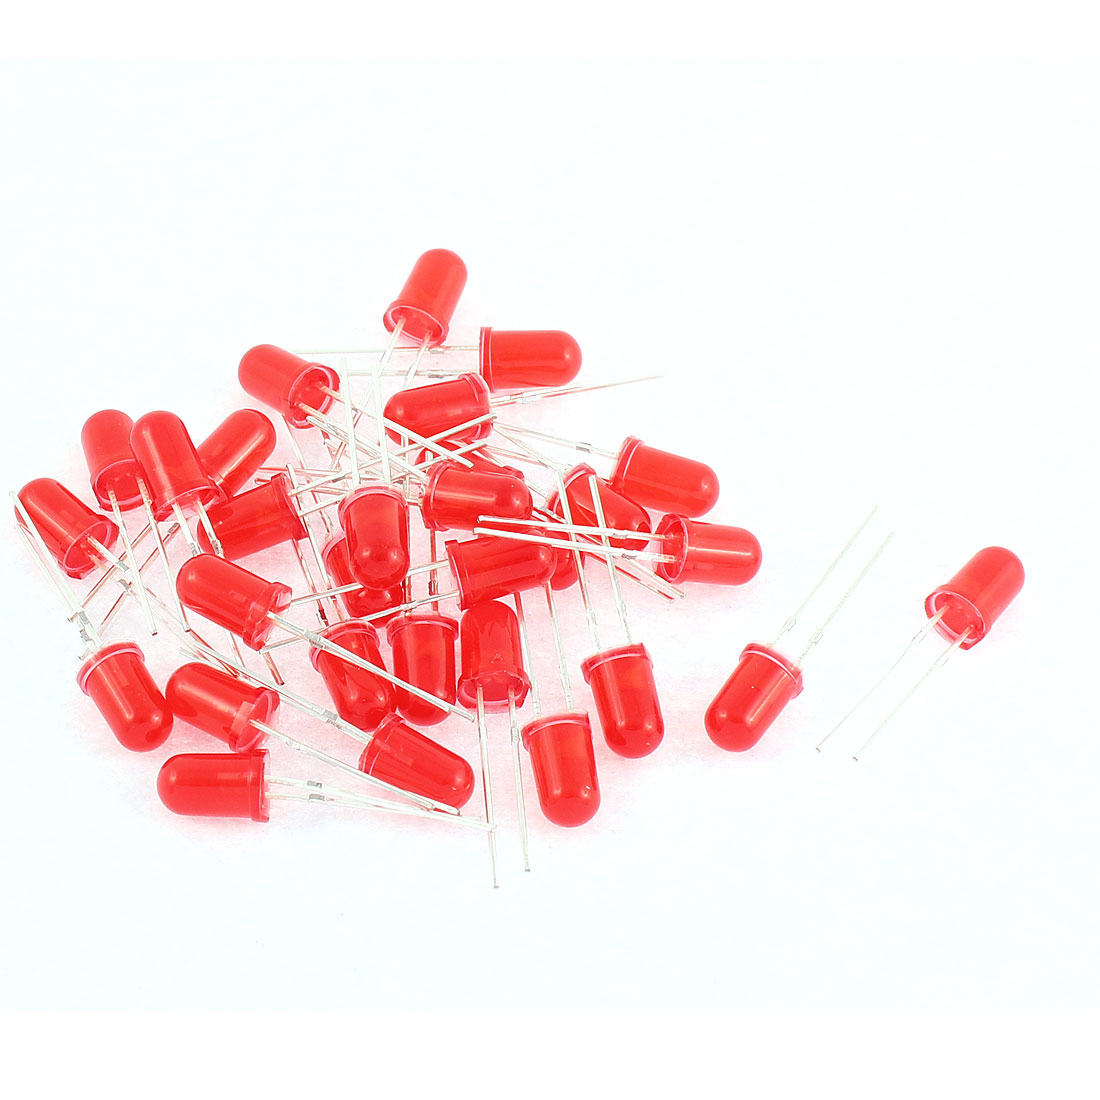 30pcs 5mm Red Color Round Light Emitting Diodes LEDs Bulb Component